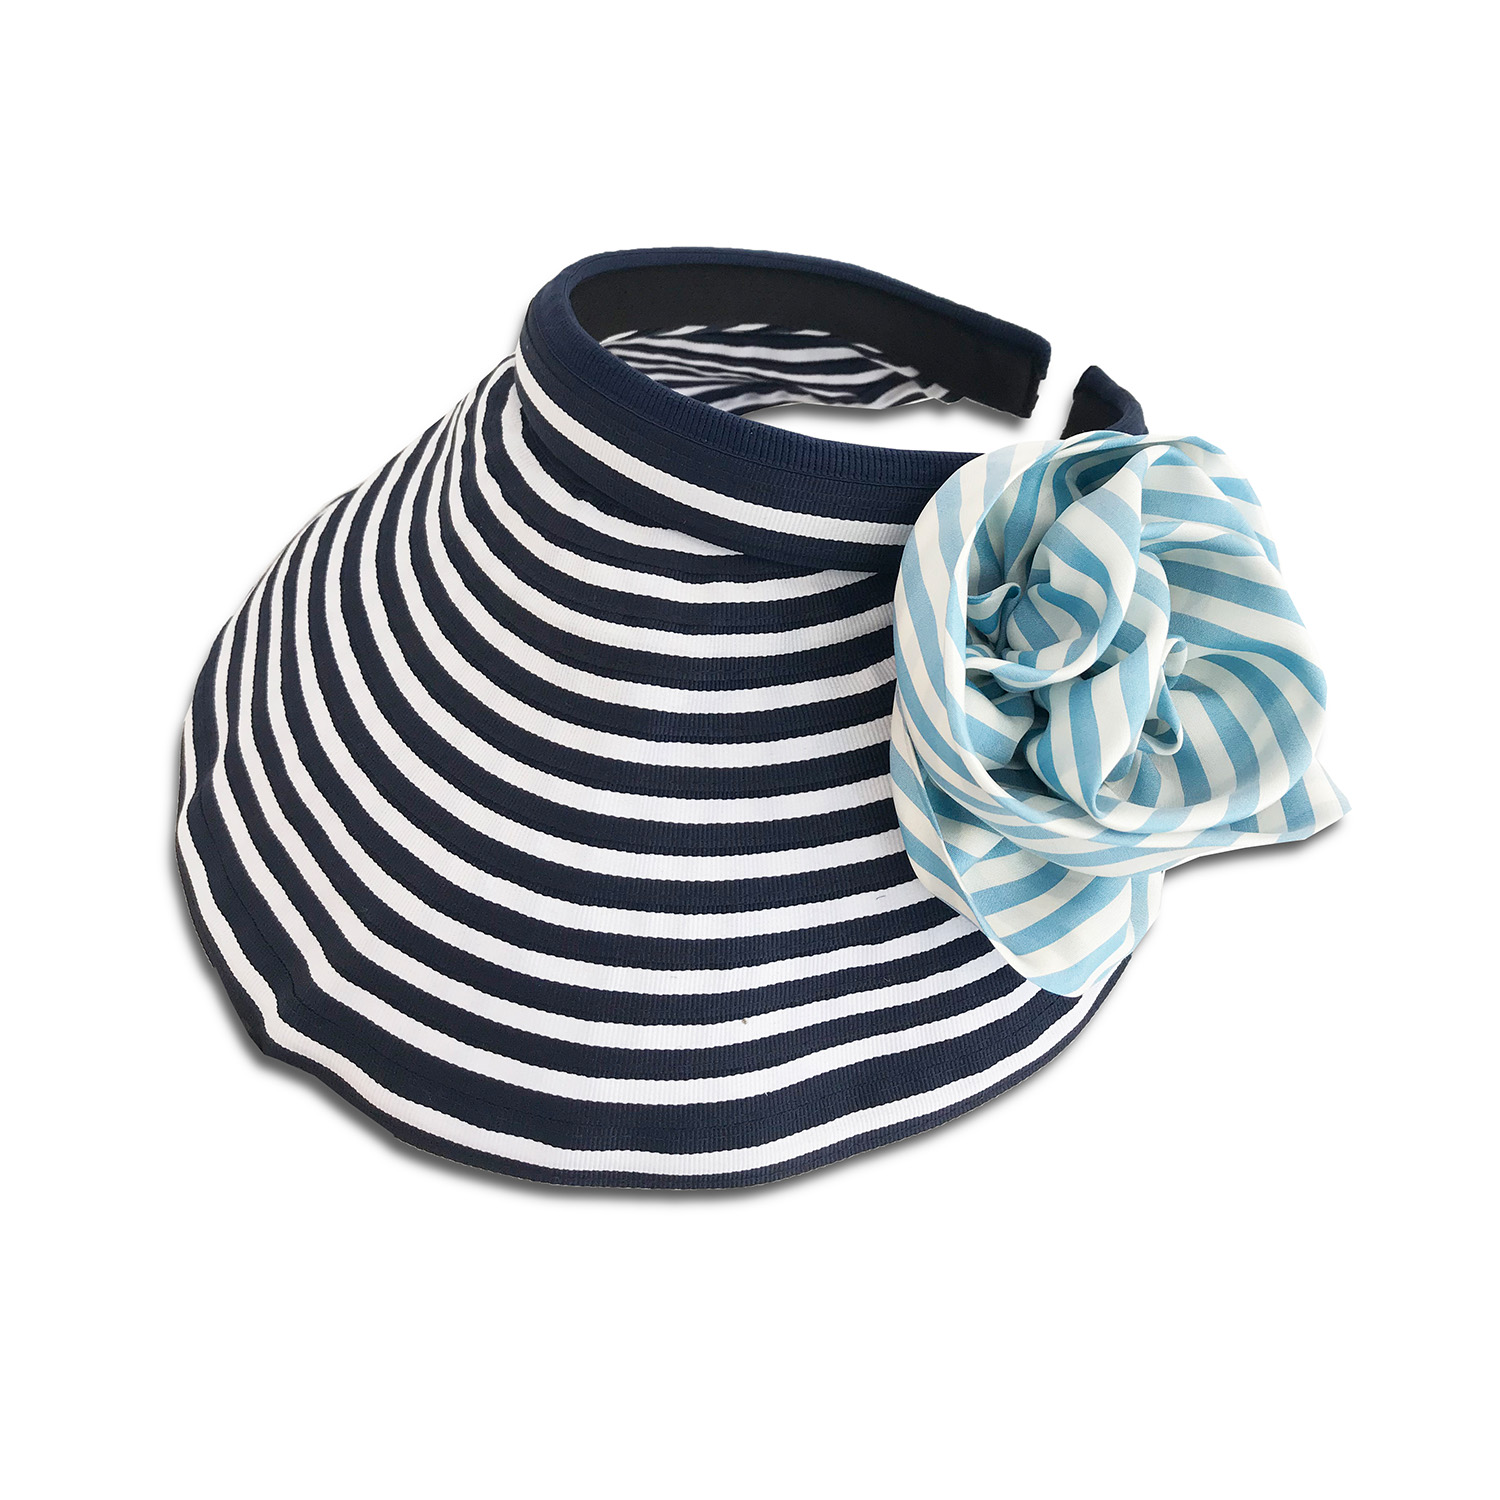 CVD.071 14u Hellenic Fashion Brand Colorful Modern stylish trendy visor hat foldable cotton beautiful Luxury limited Style woman gift exclusive Cotton Removable Flower